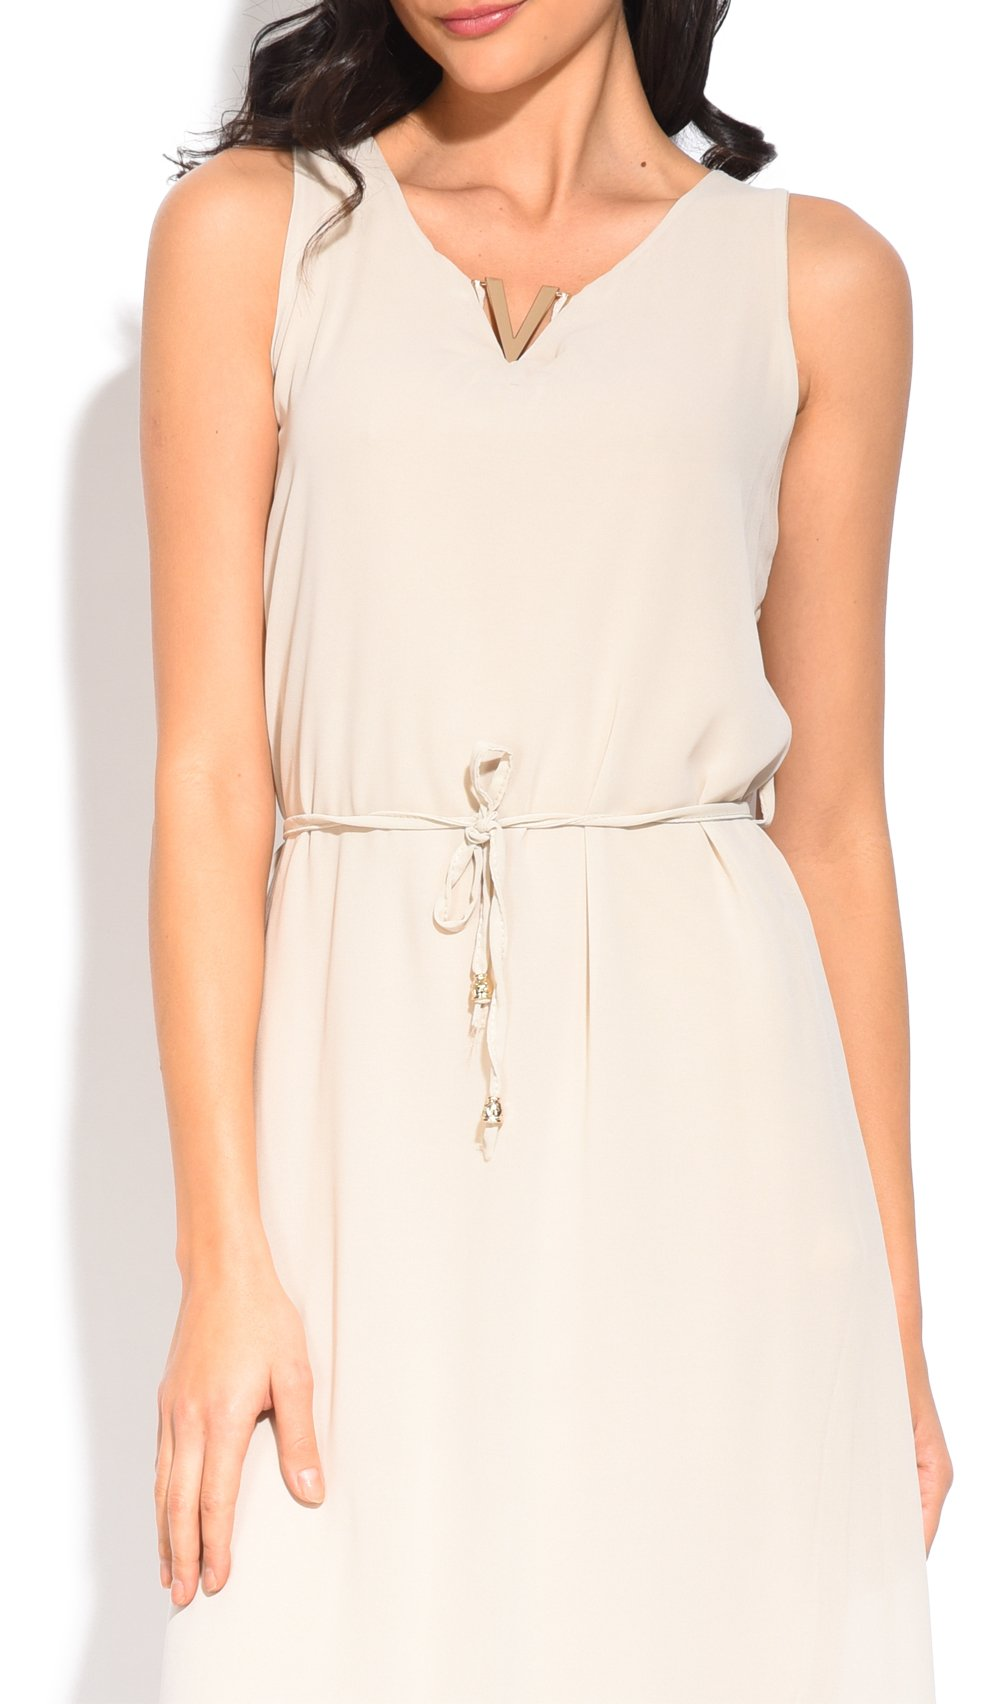 SHORT DOUBLE-LINED DRESS WITH ACCESSORIZED ROUND COLLAR AND BELT